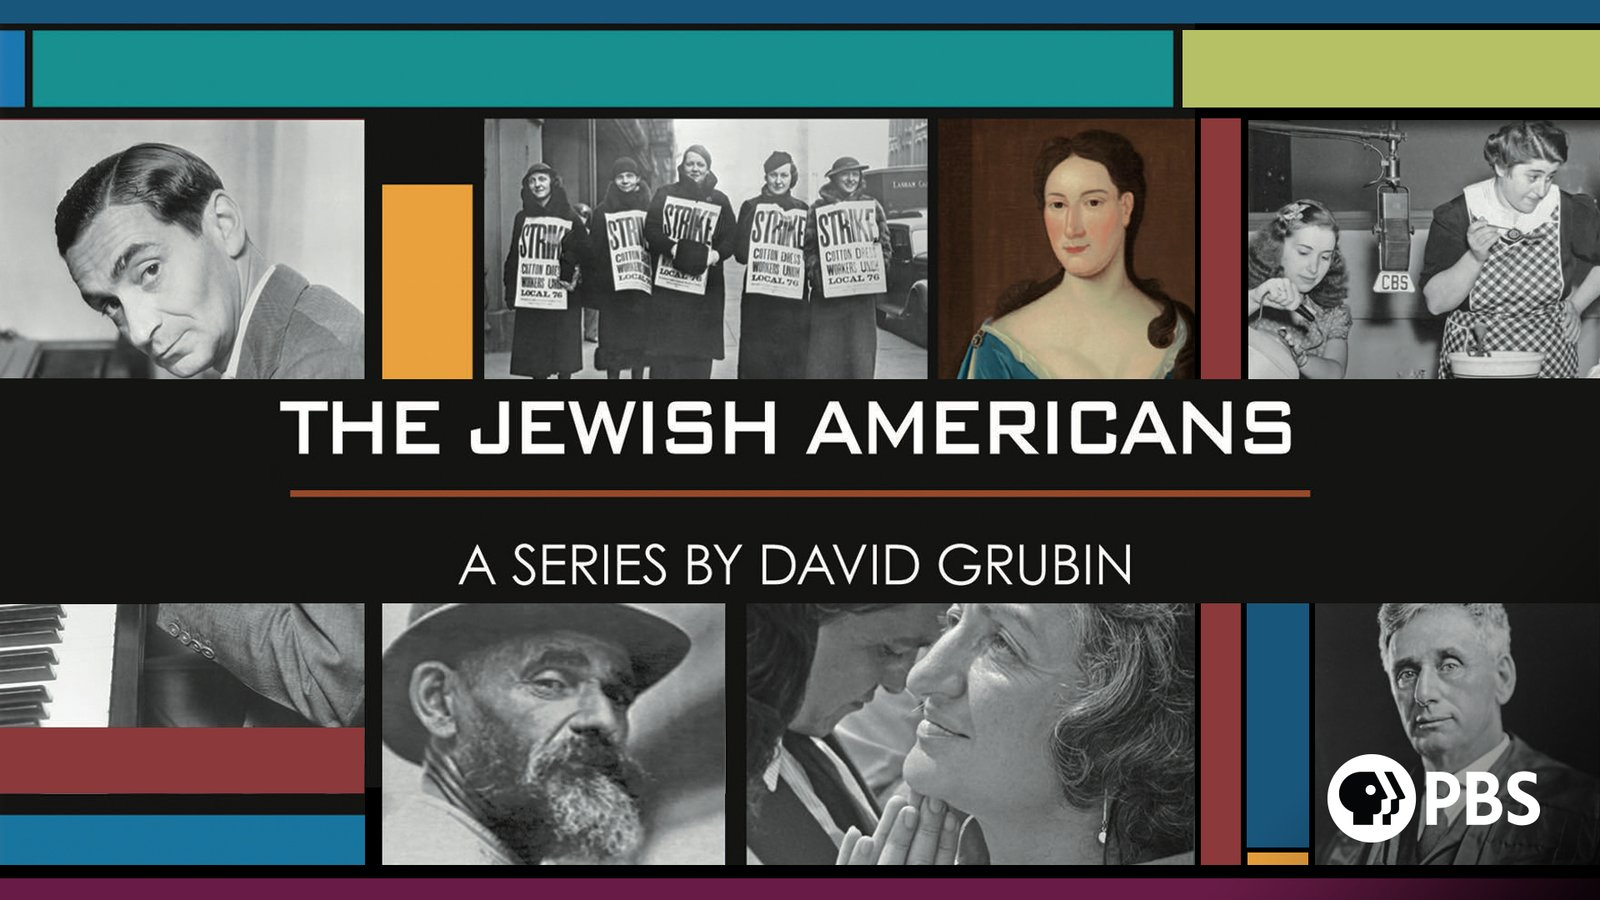 The Jewish Americans - A Series by David Grubin